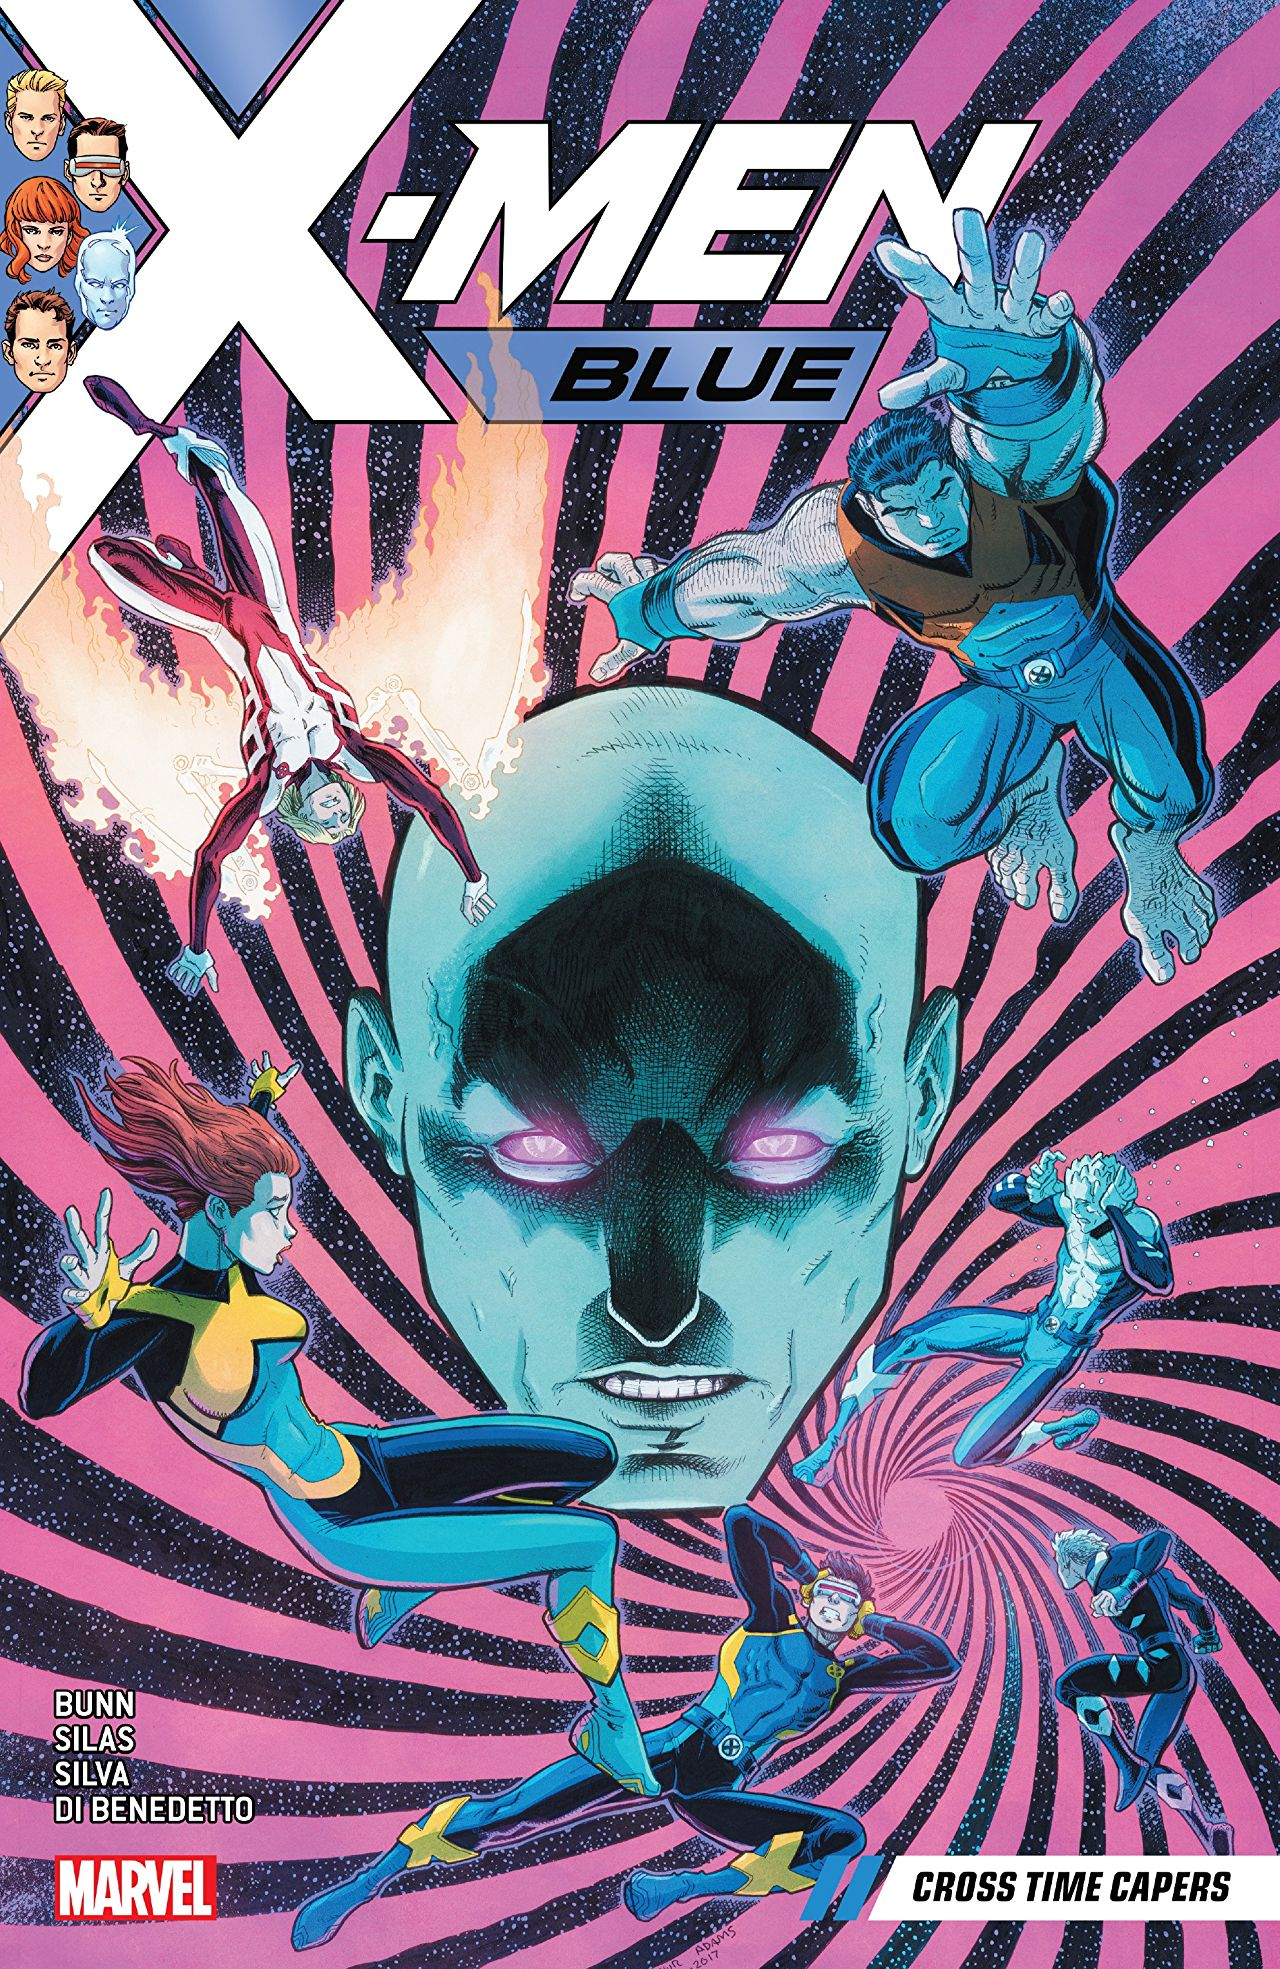 One of X-Men Blue's best story arcs becomes one of its most entertaining collections.